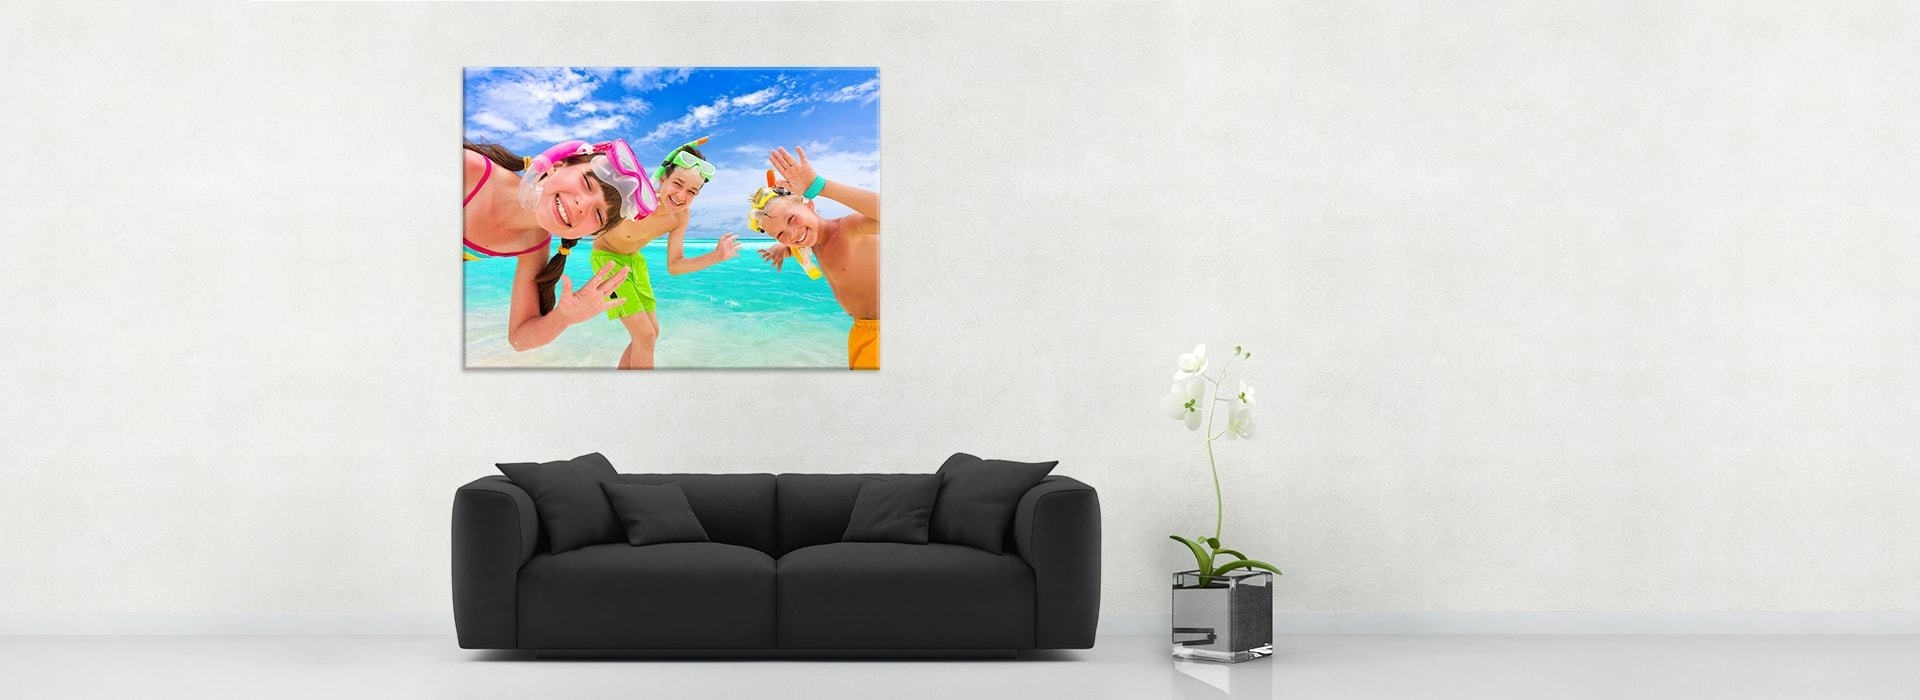 Newest Canvas Wall Art Of Philippines Intended For Canvas Prints (View 11 of 15)